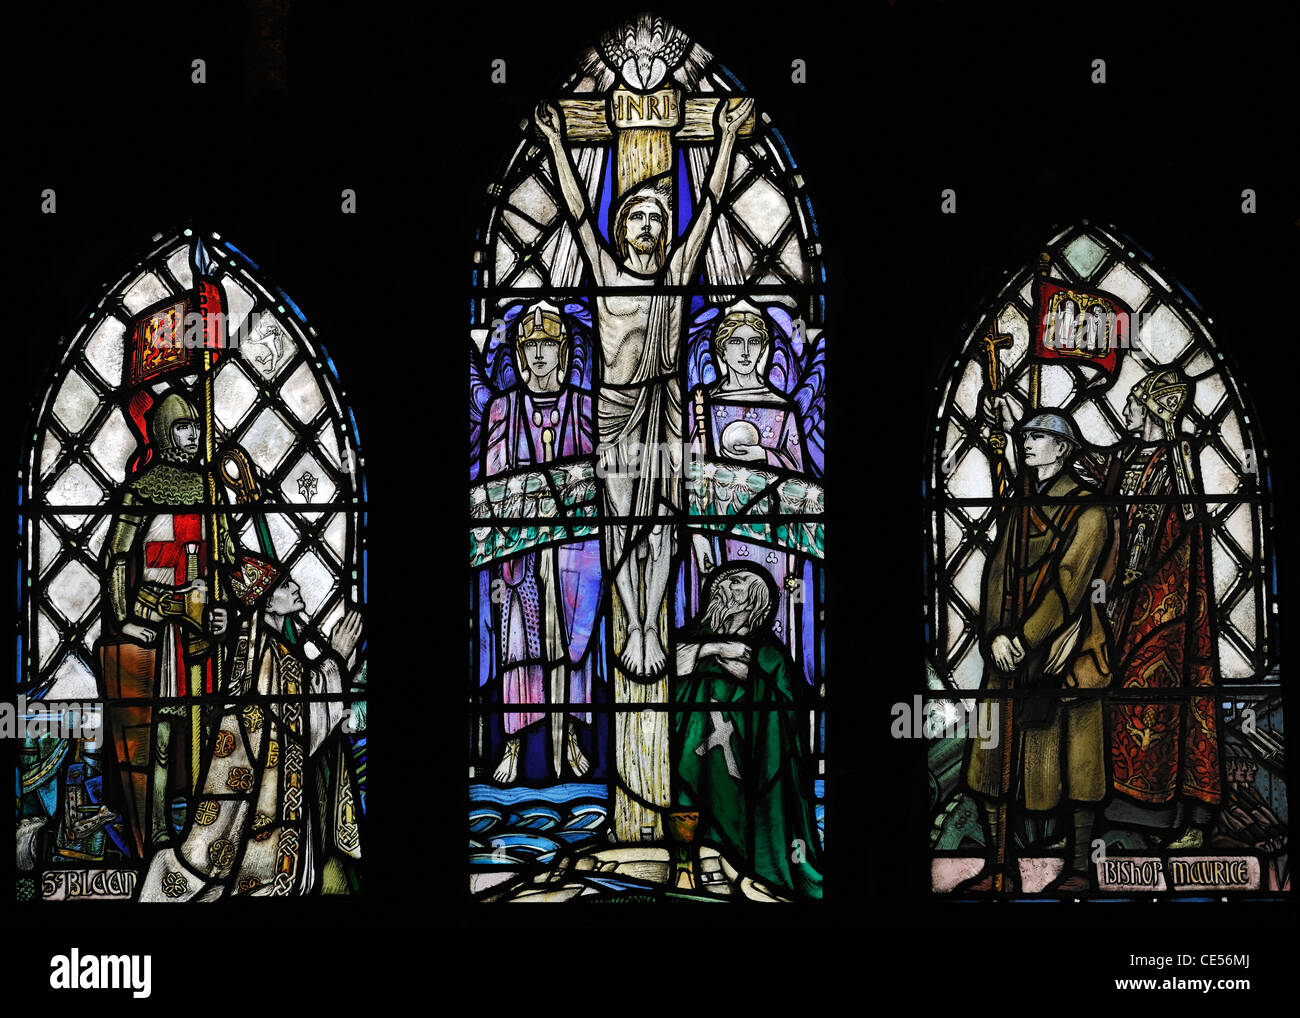 Stained glass (Douglas Strachan) commemorating the sacrifice of soldiers in the First Great War (1914-18), Dunblane - Stock Image